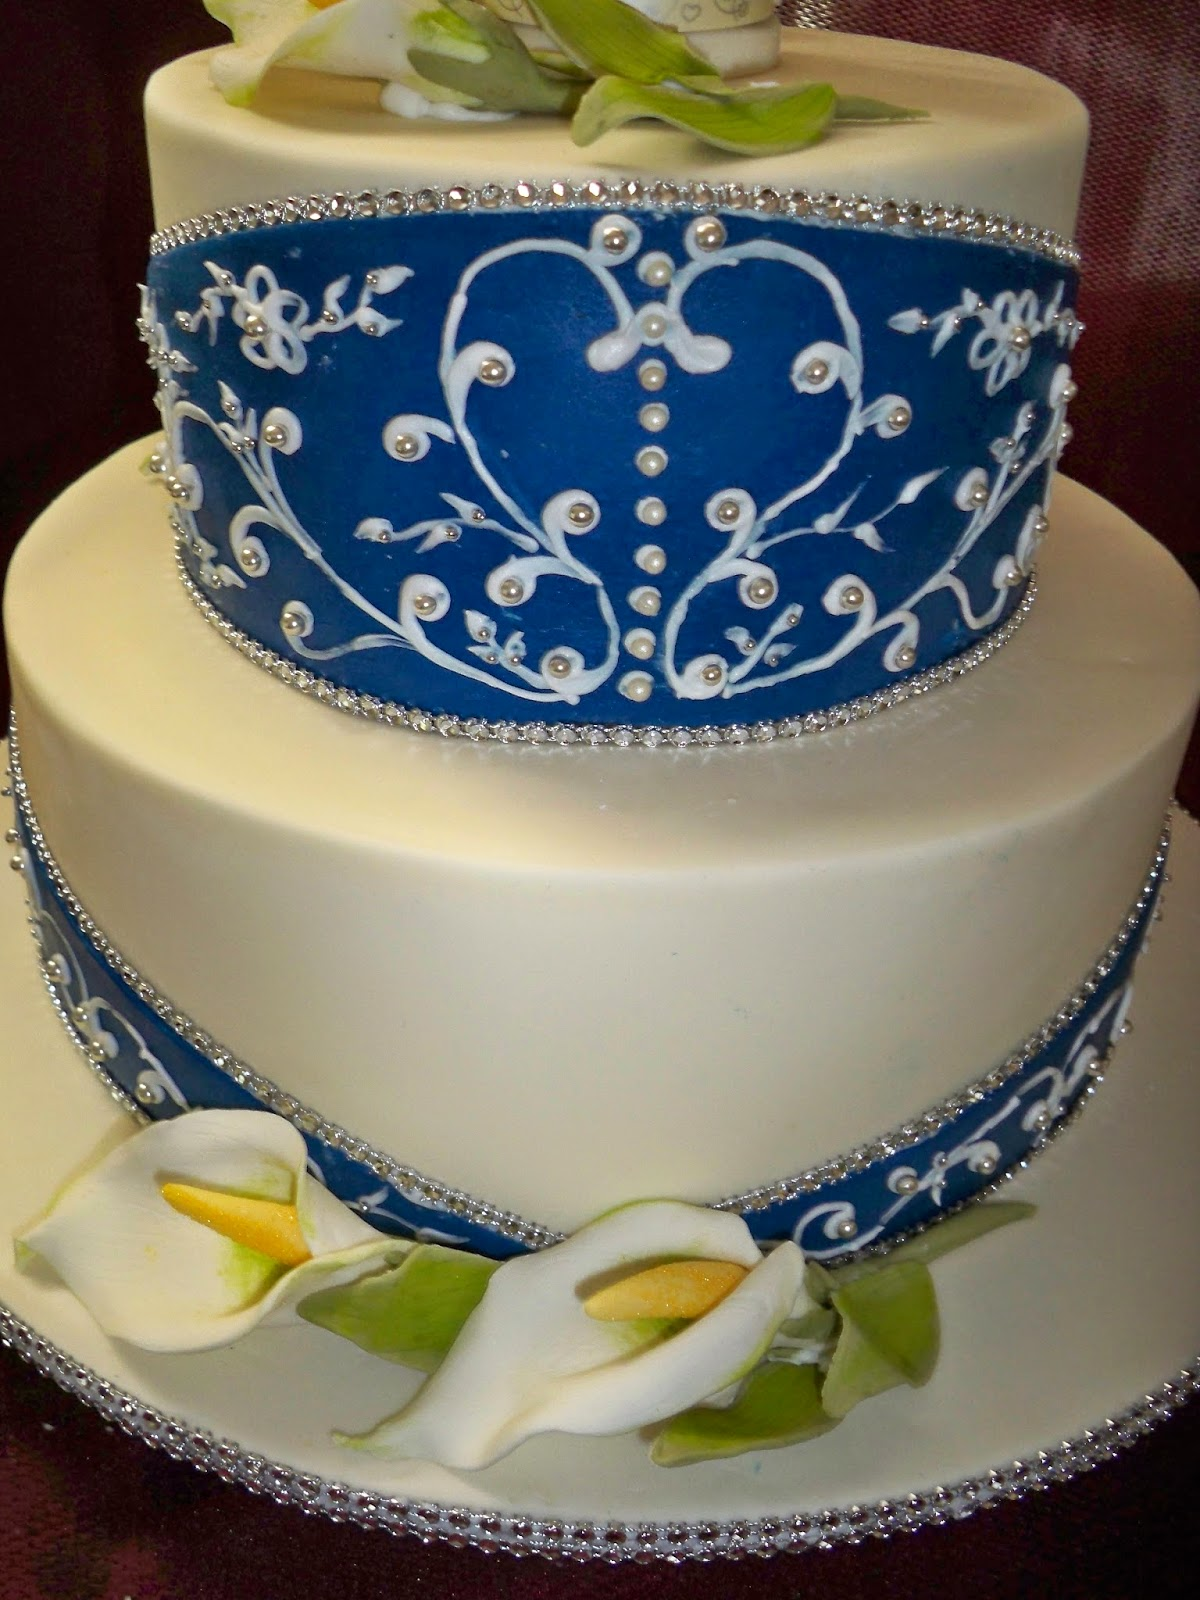 royal blue and white wedding cake with arum lilies